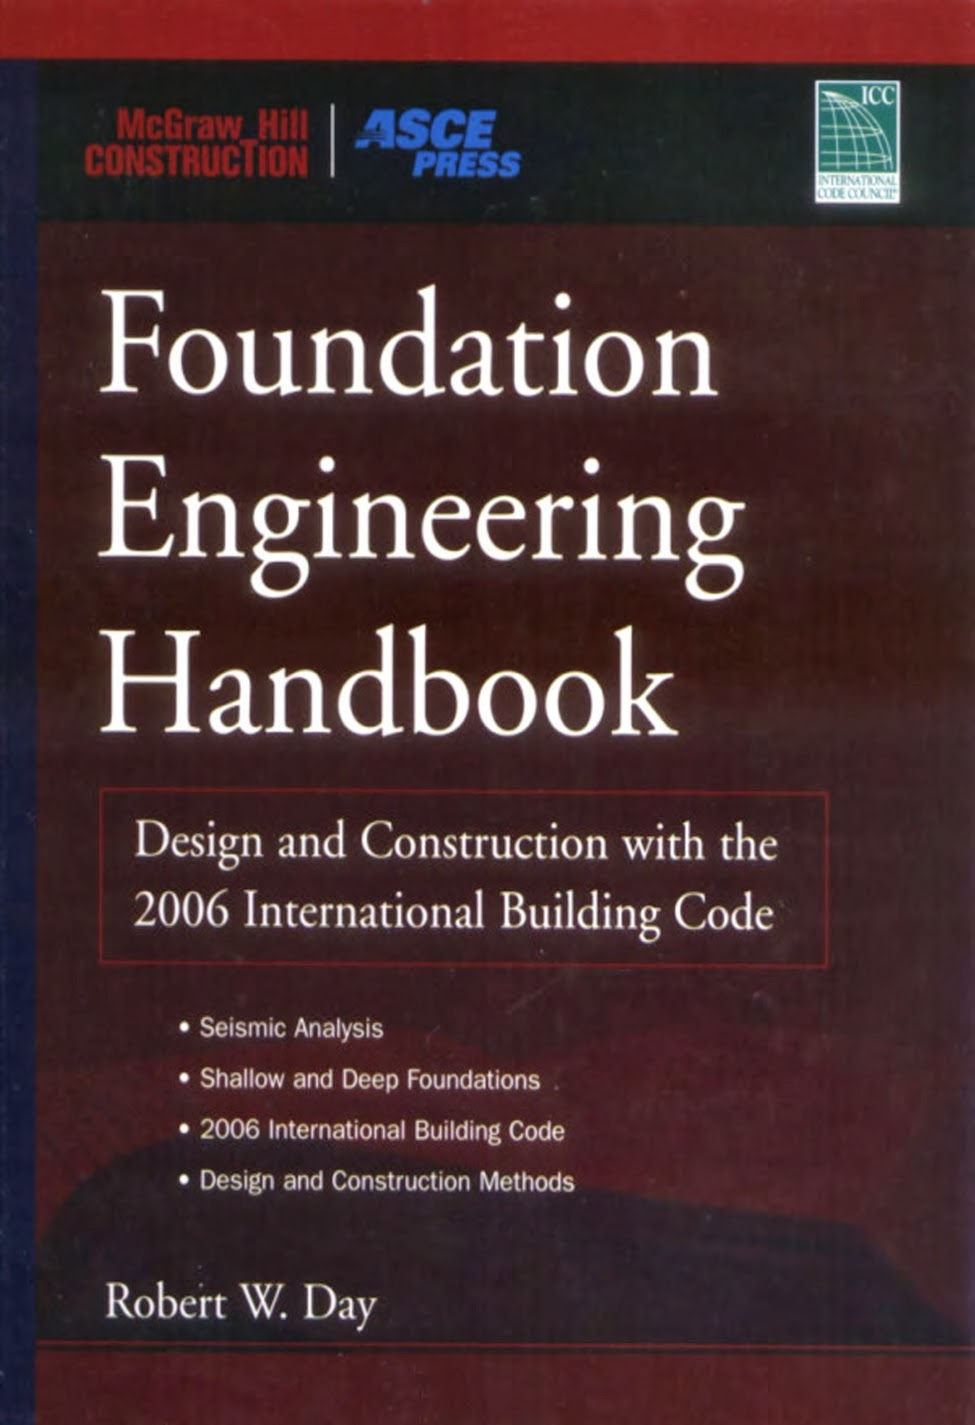 Foundation Engineering Handbook by Robert W.Day